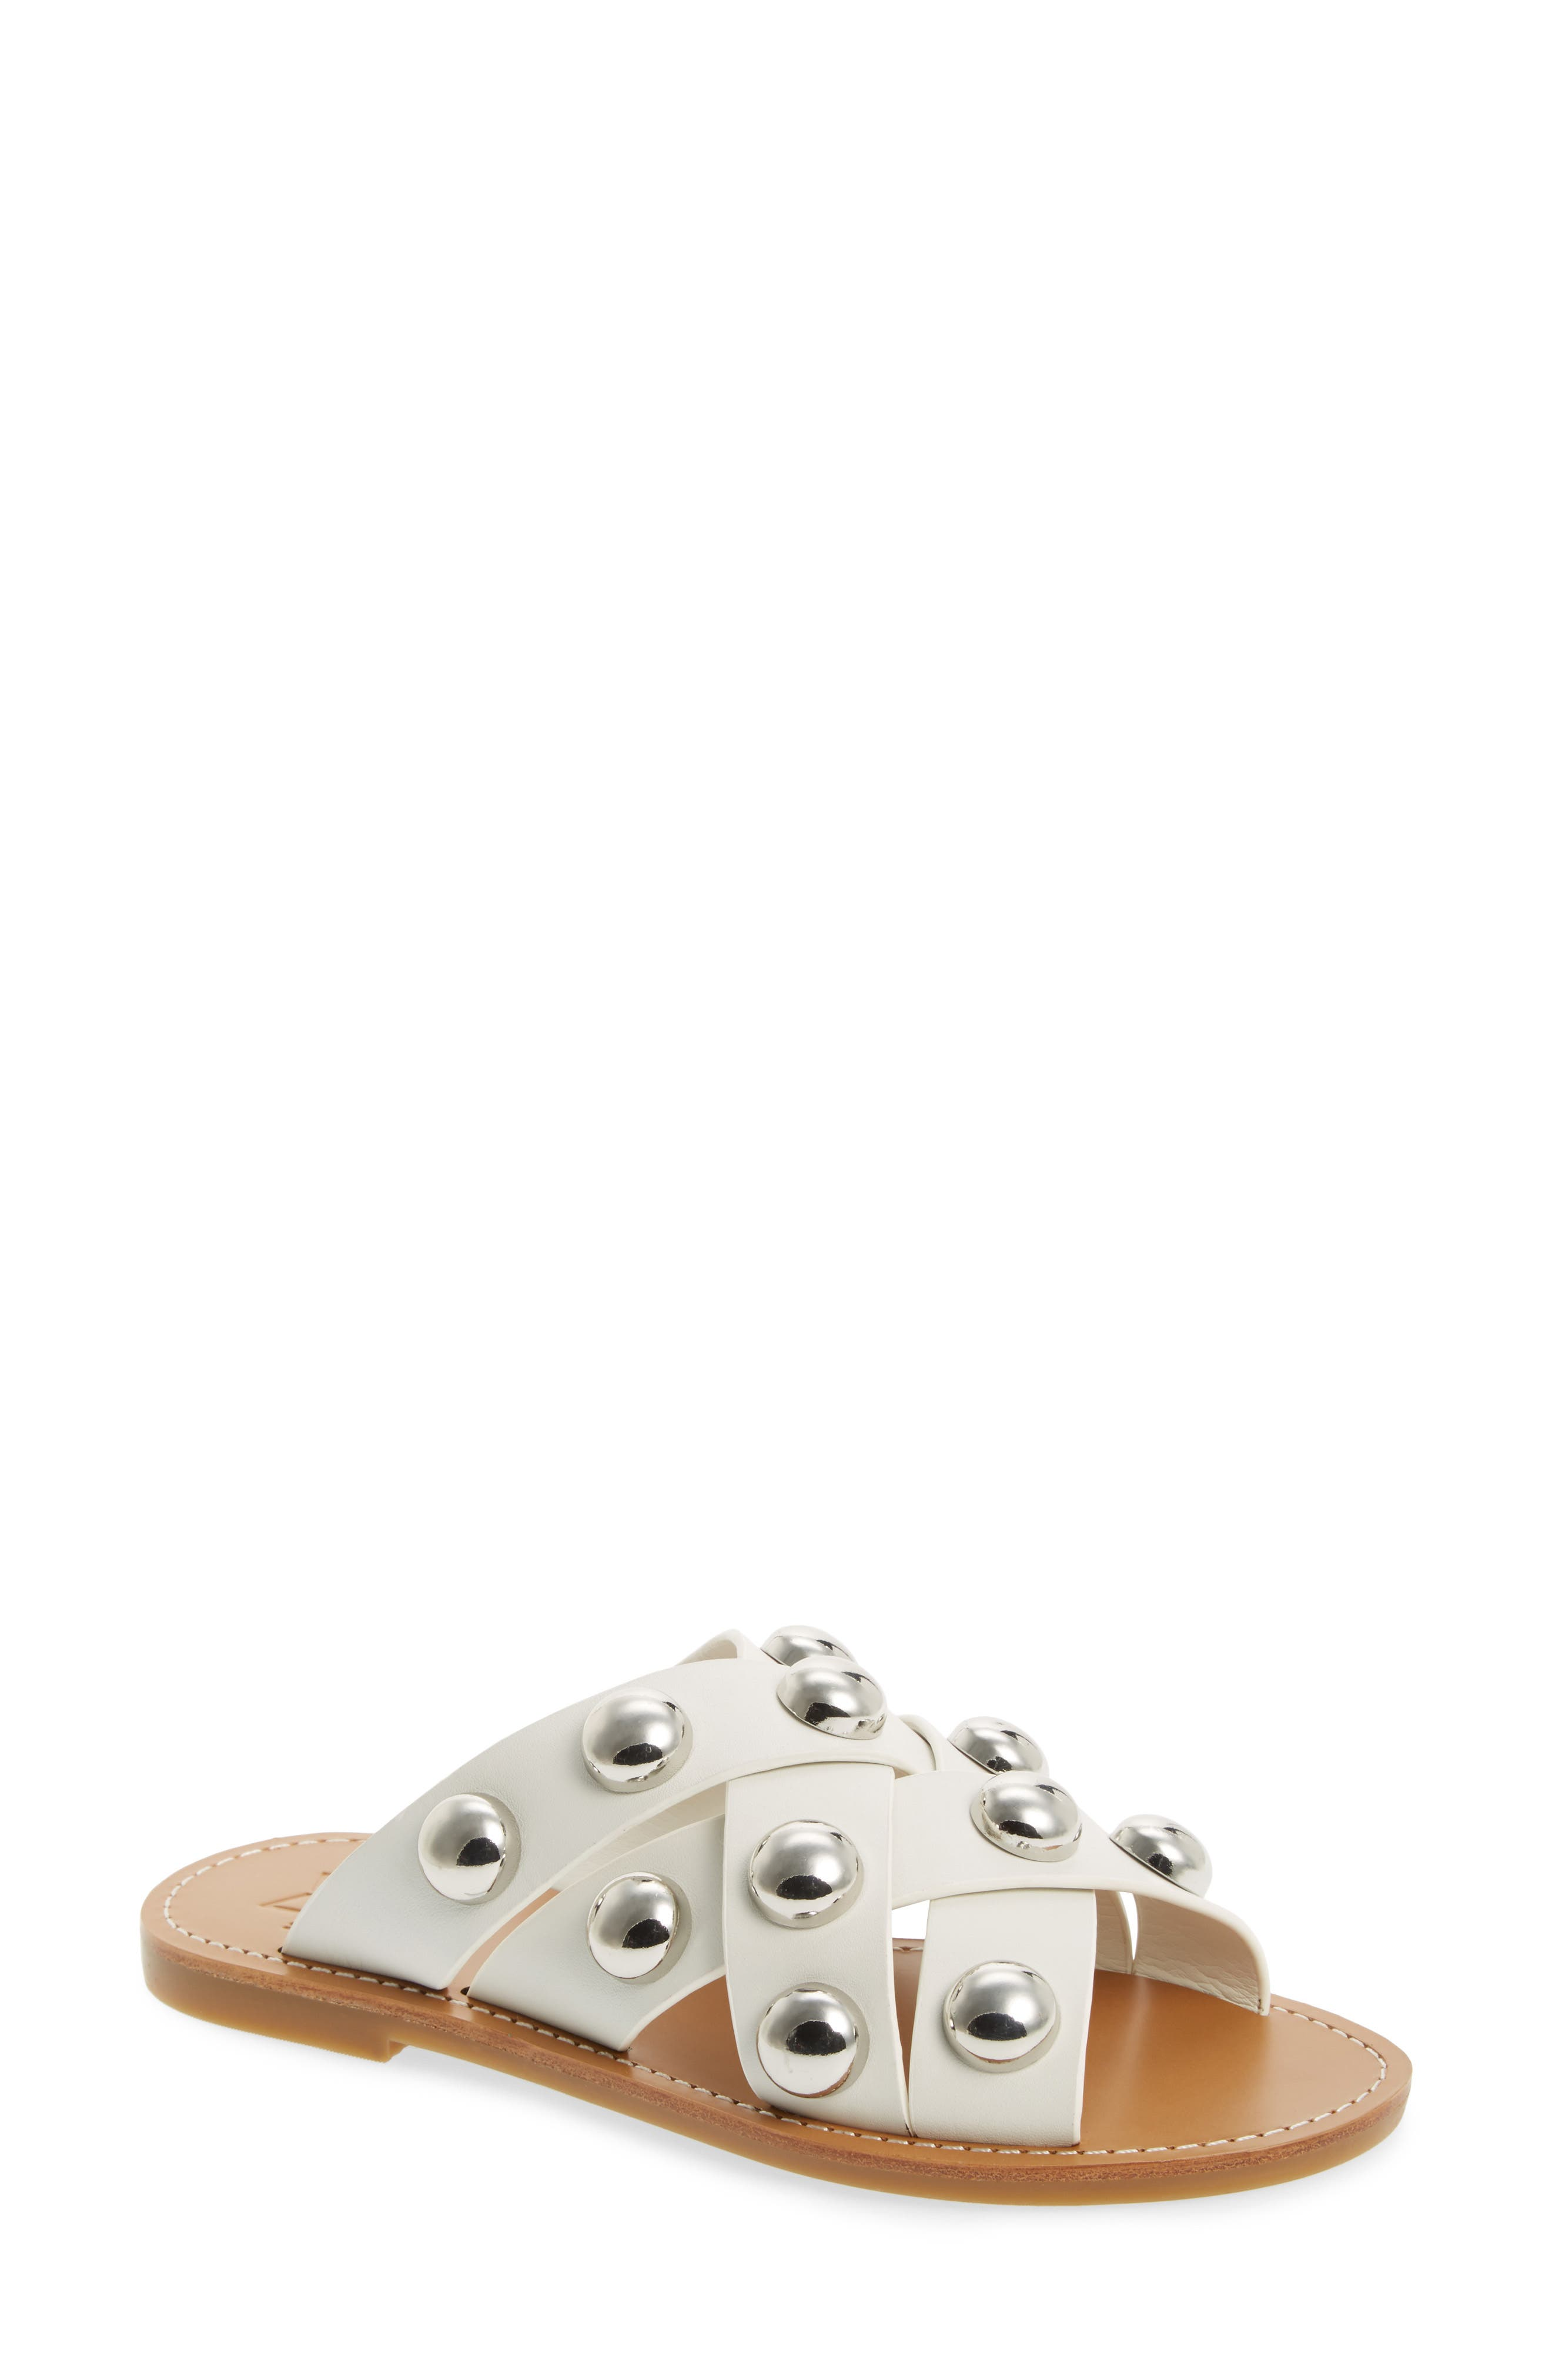 Sandals for Women On Sale, Rose, Leather, 2017, 4.5 Ash